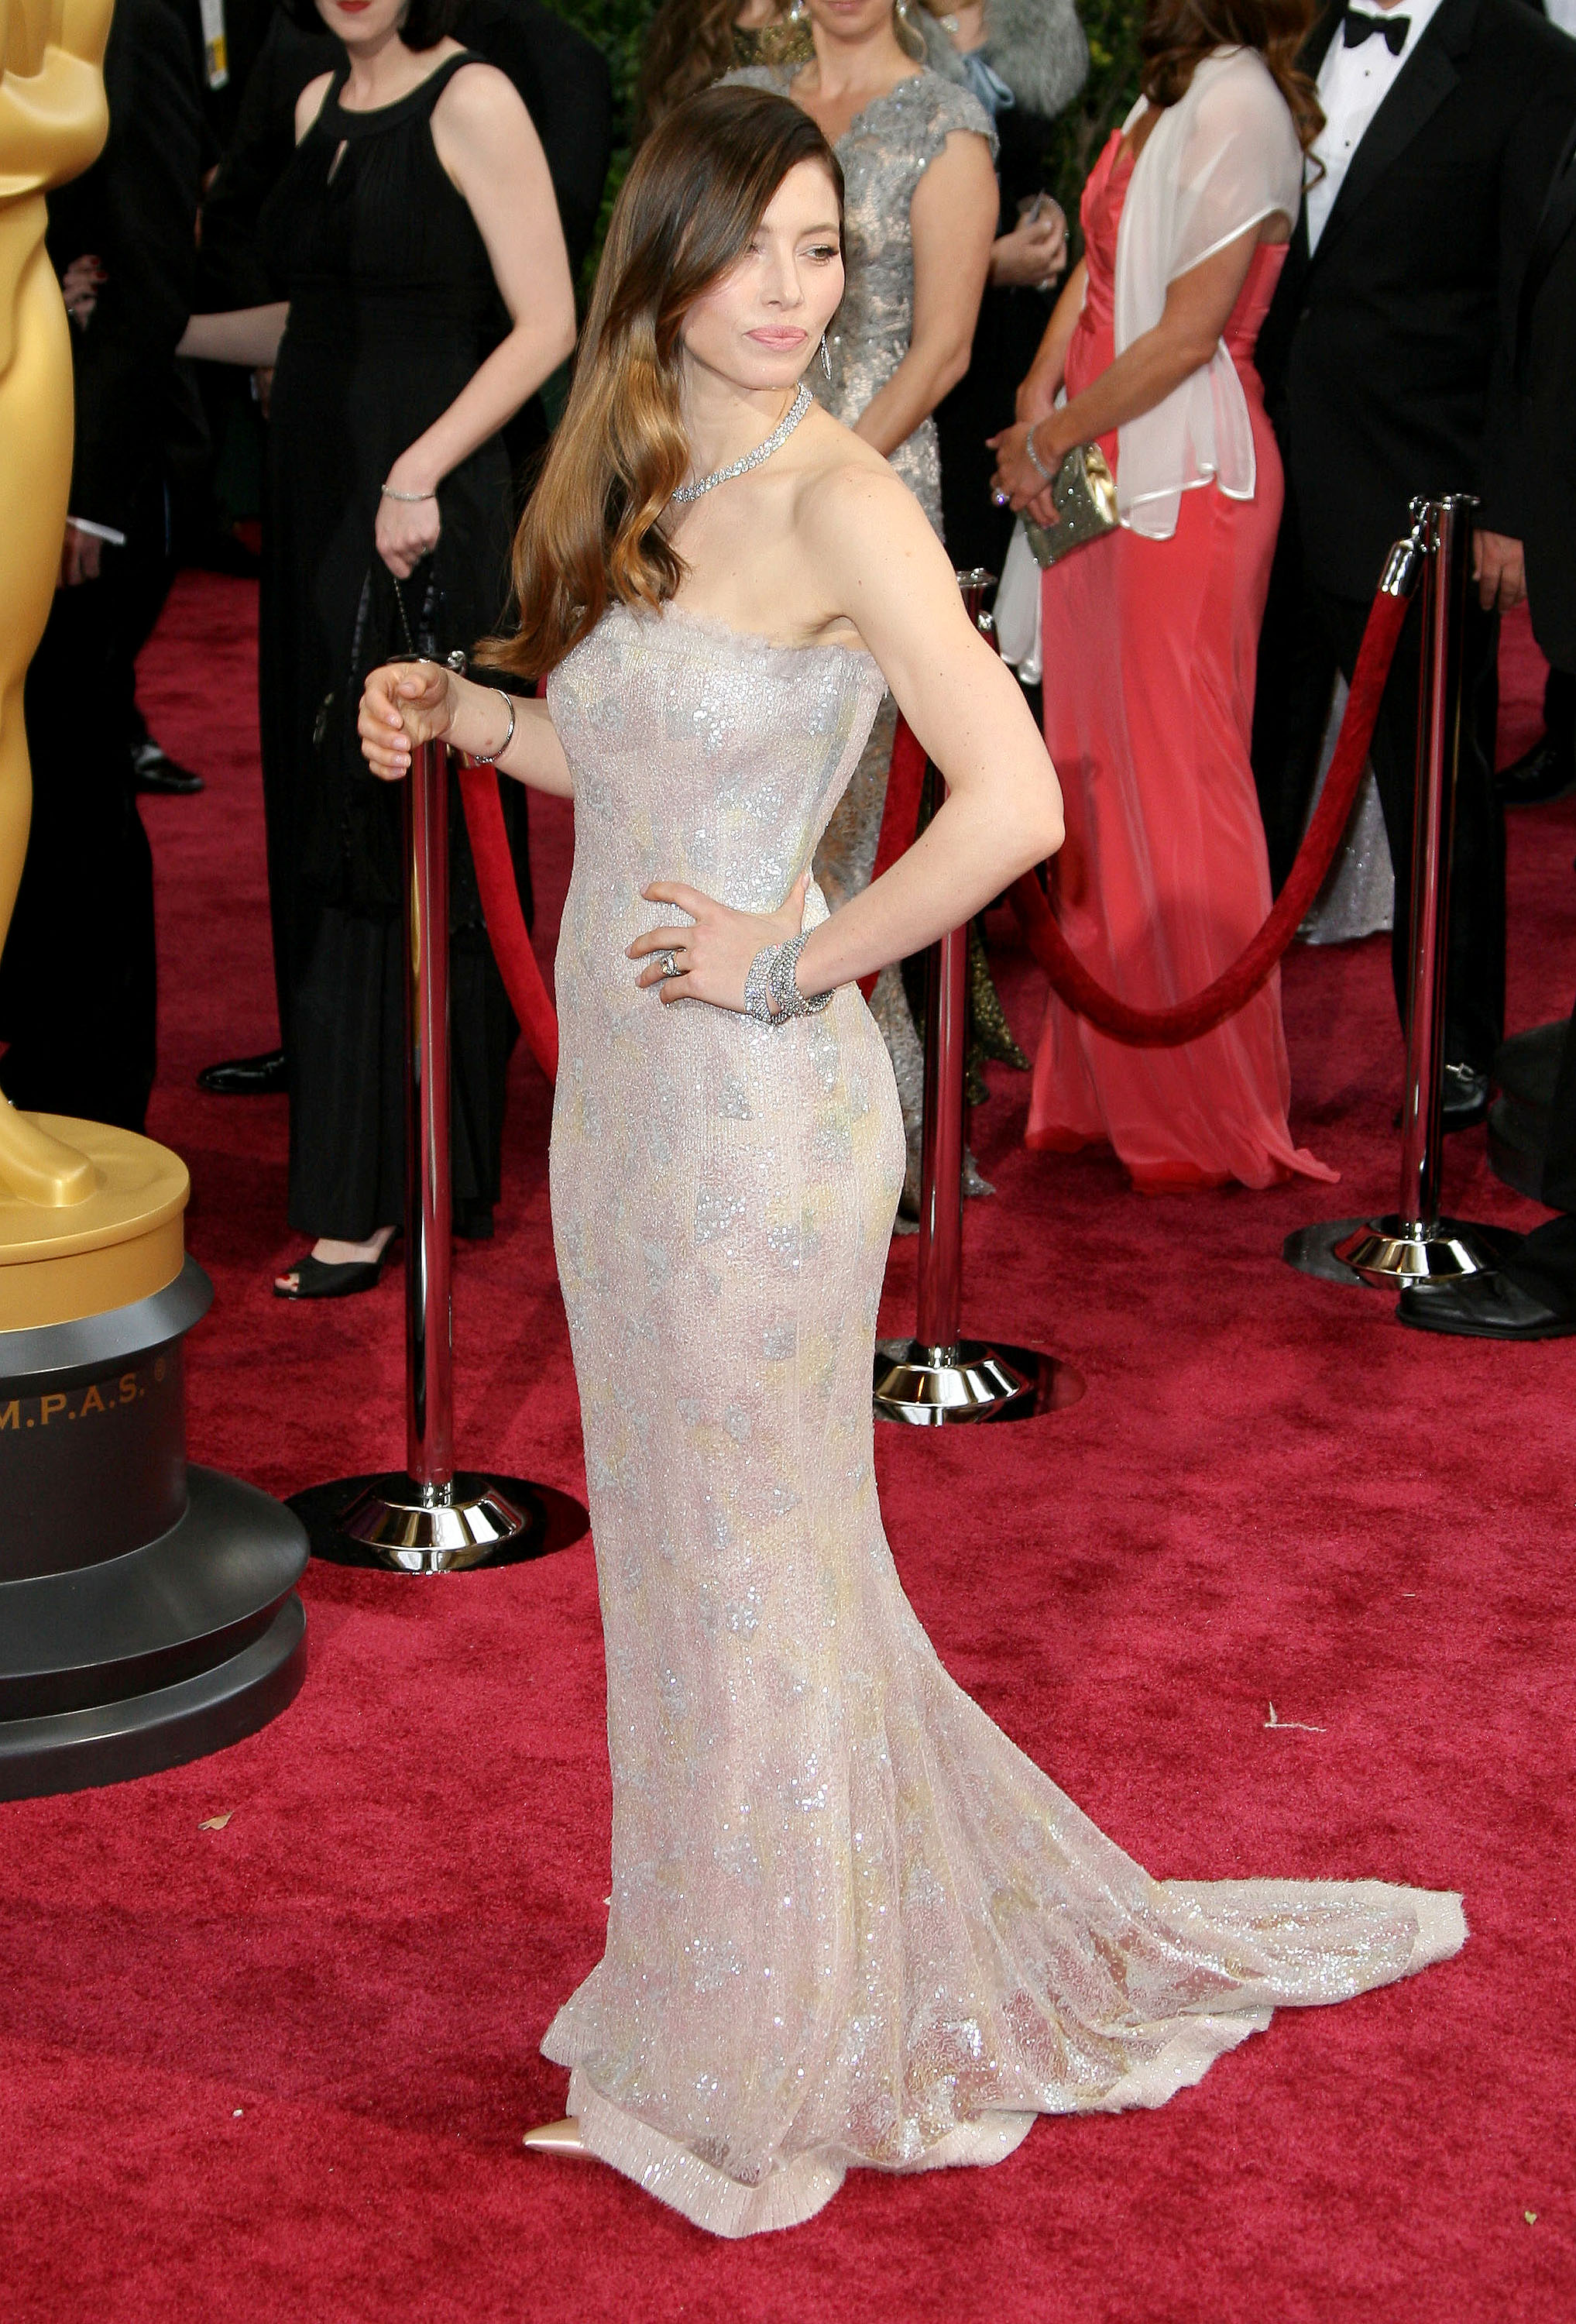 Jessica at the Oscars 2014